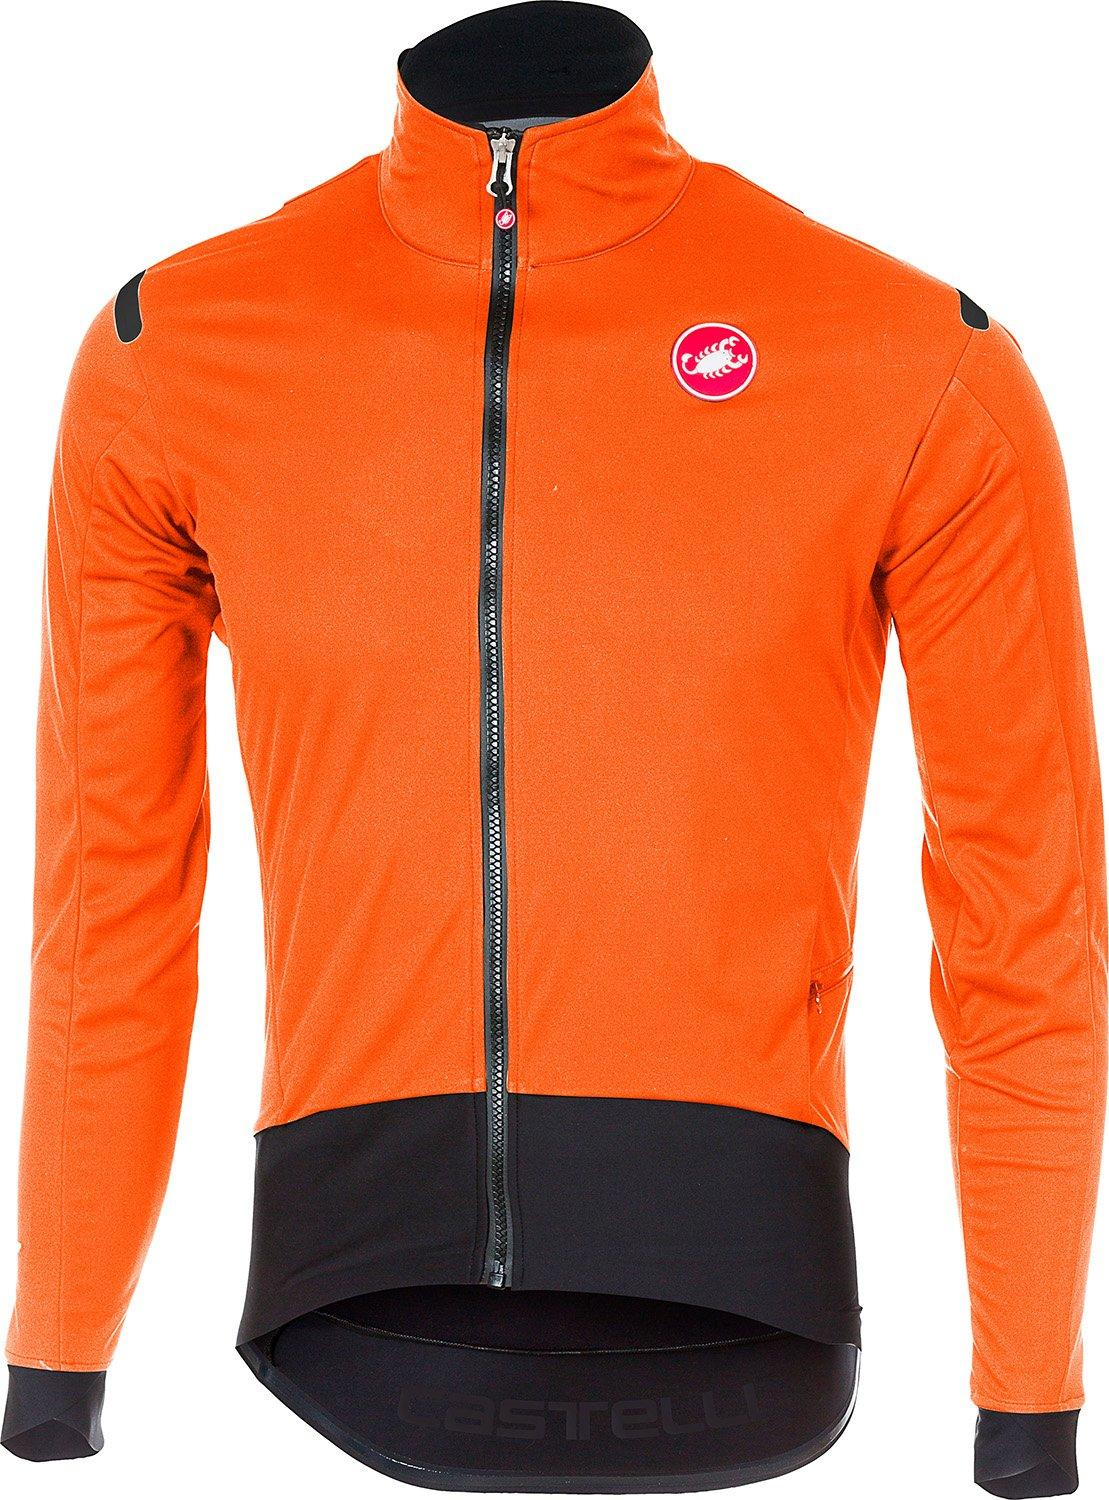 Castelli Fietsjack Heren Oranje Zwart / CA Alpha Ros Light Jacket Orange/Black